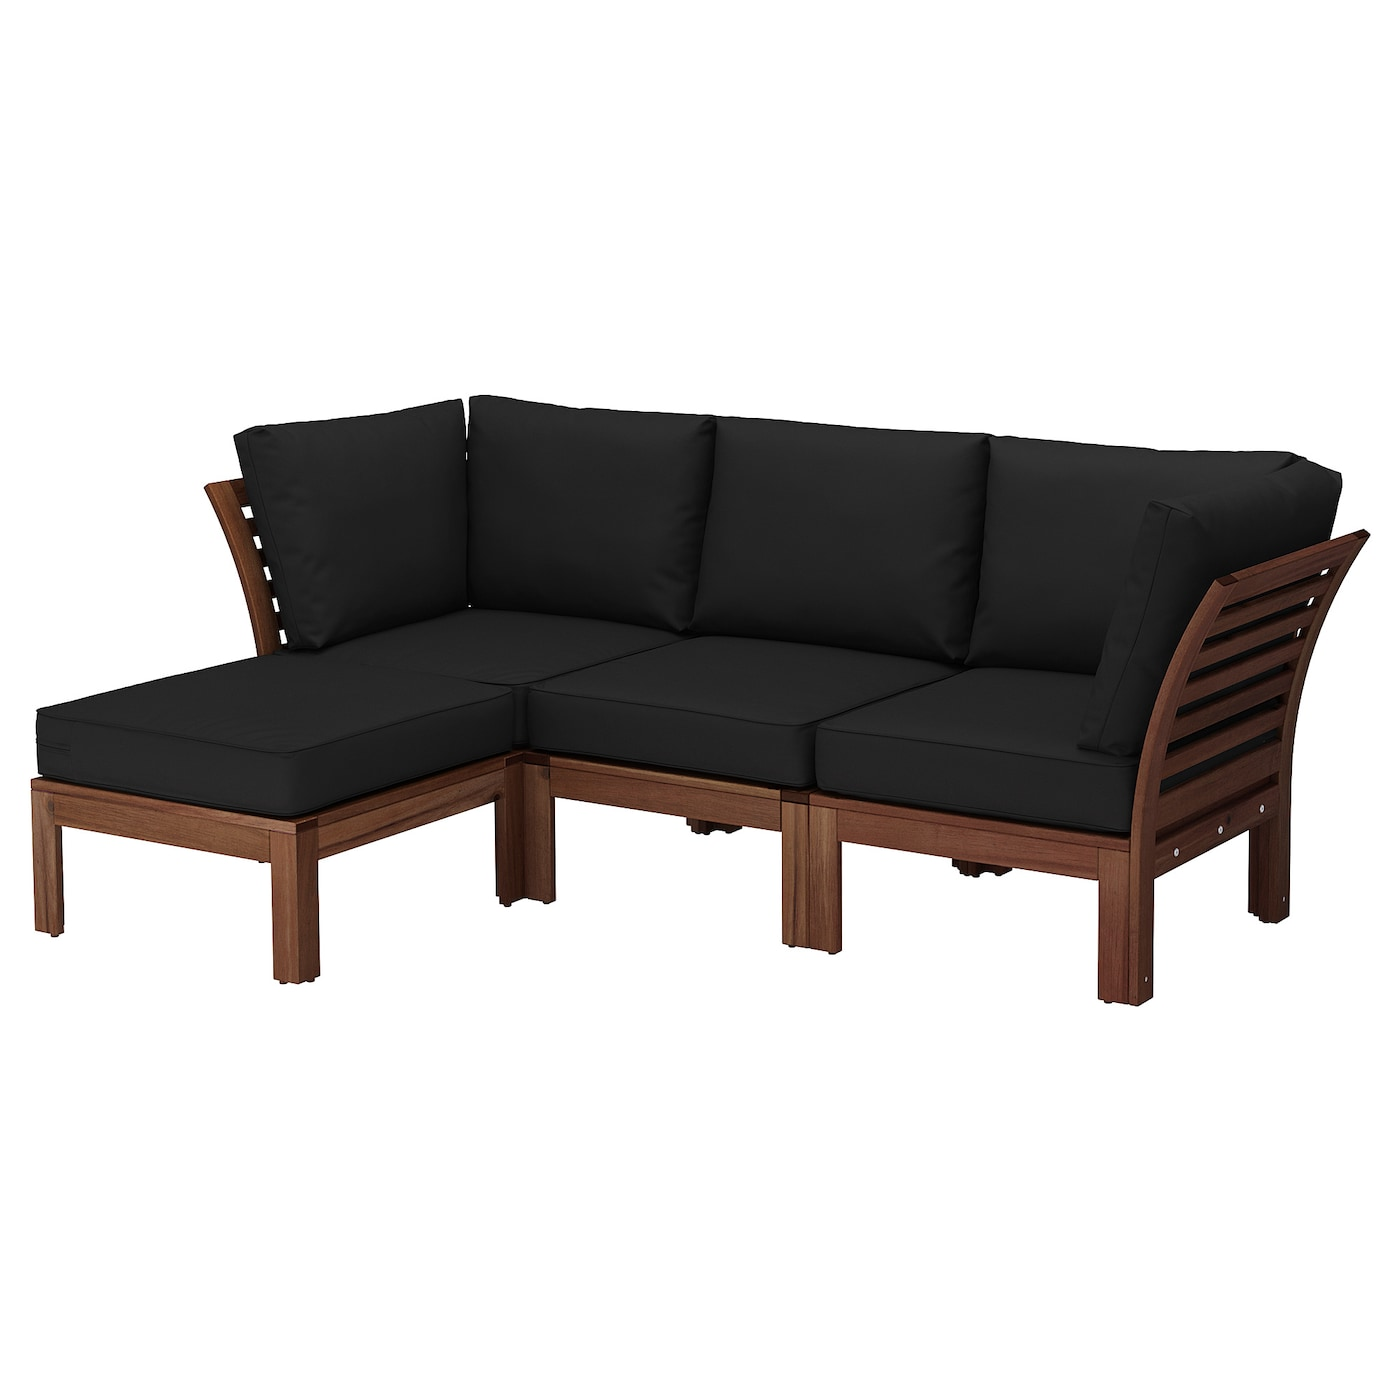 Pplar 3 seat sofa with footstool outdoor brown stained - Sofa exterior ikea ...